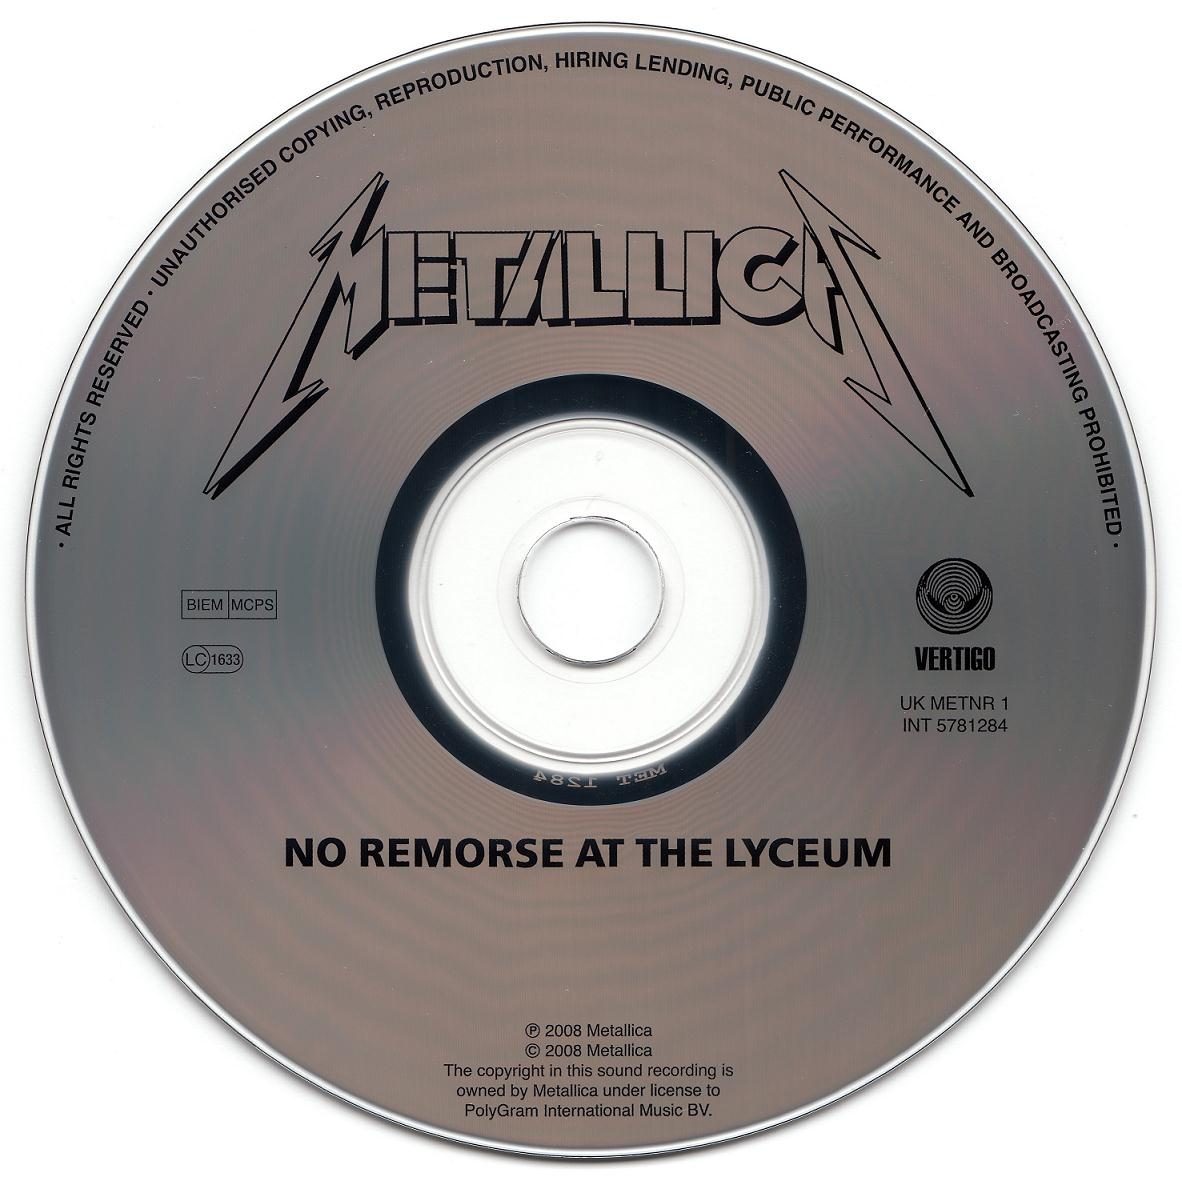 1984-11-12-NO_REMORSE_AT_THE_LYCEUM-CD